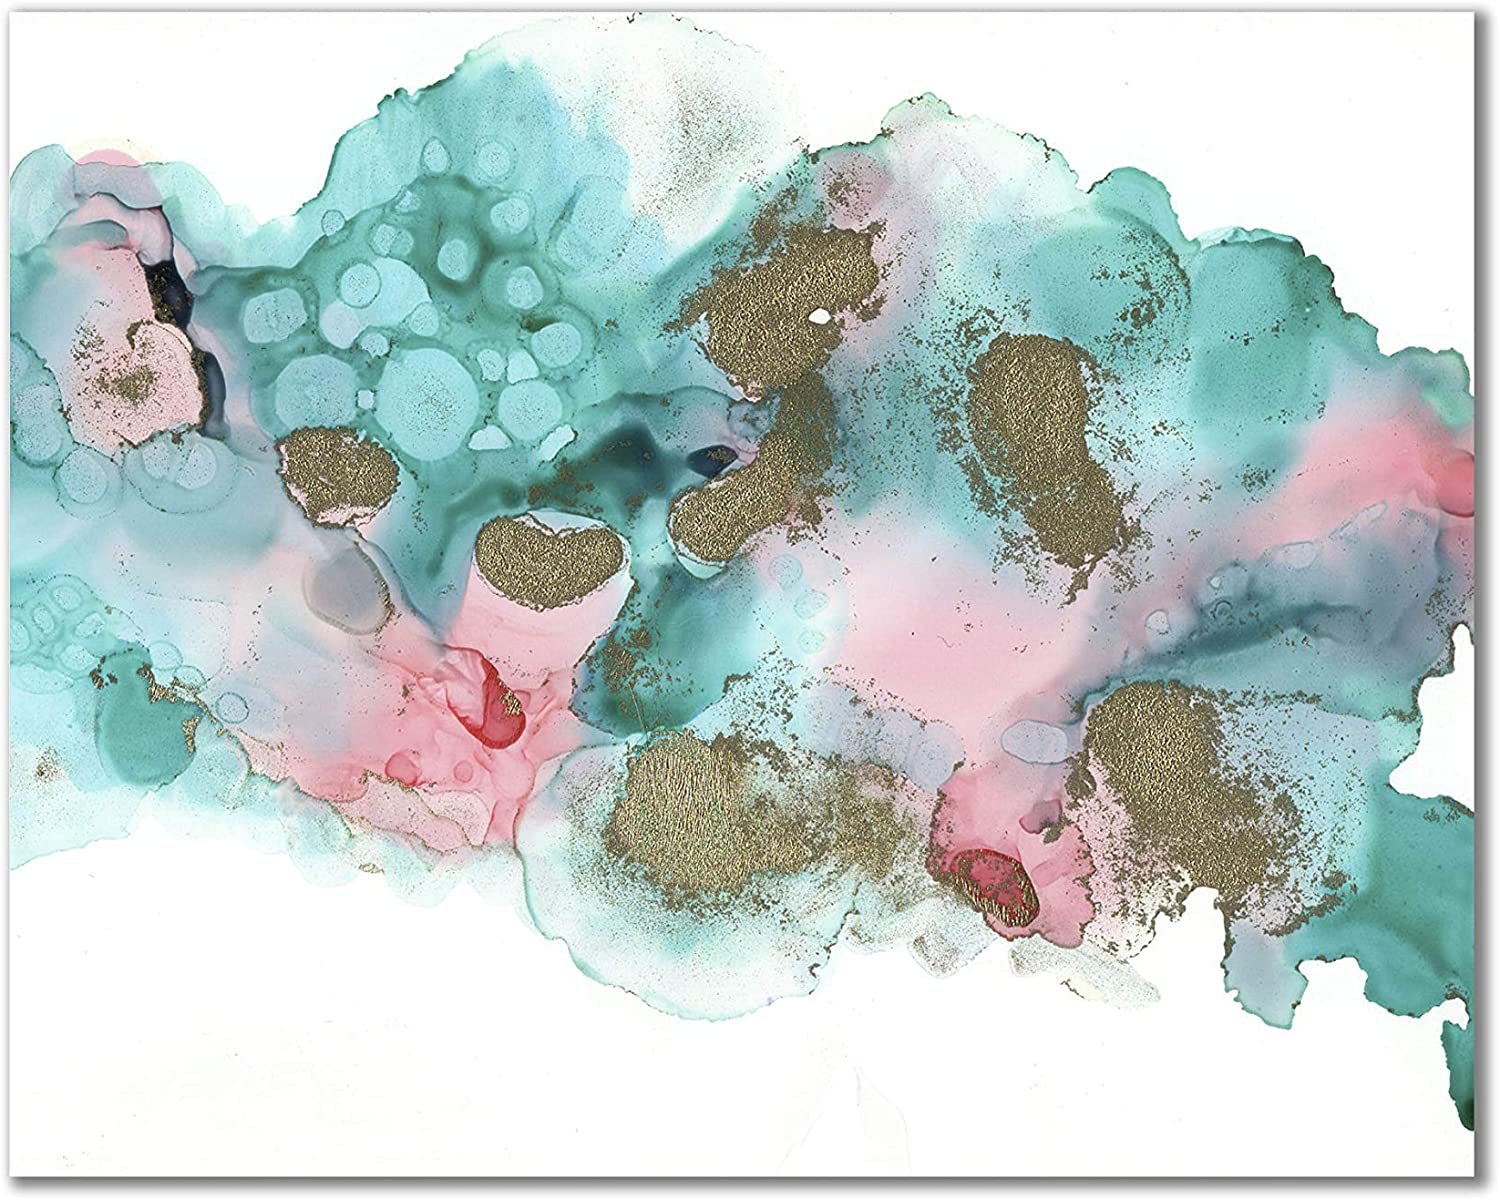 11x14 Poster Print Unframed - Aesthetic Boho Decor Abstract Teal, Turquoise and Pink Wall Art Print